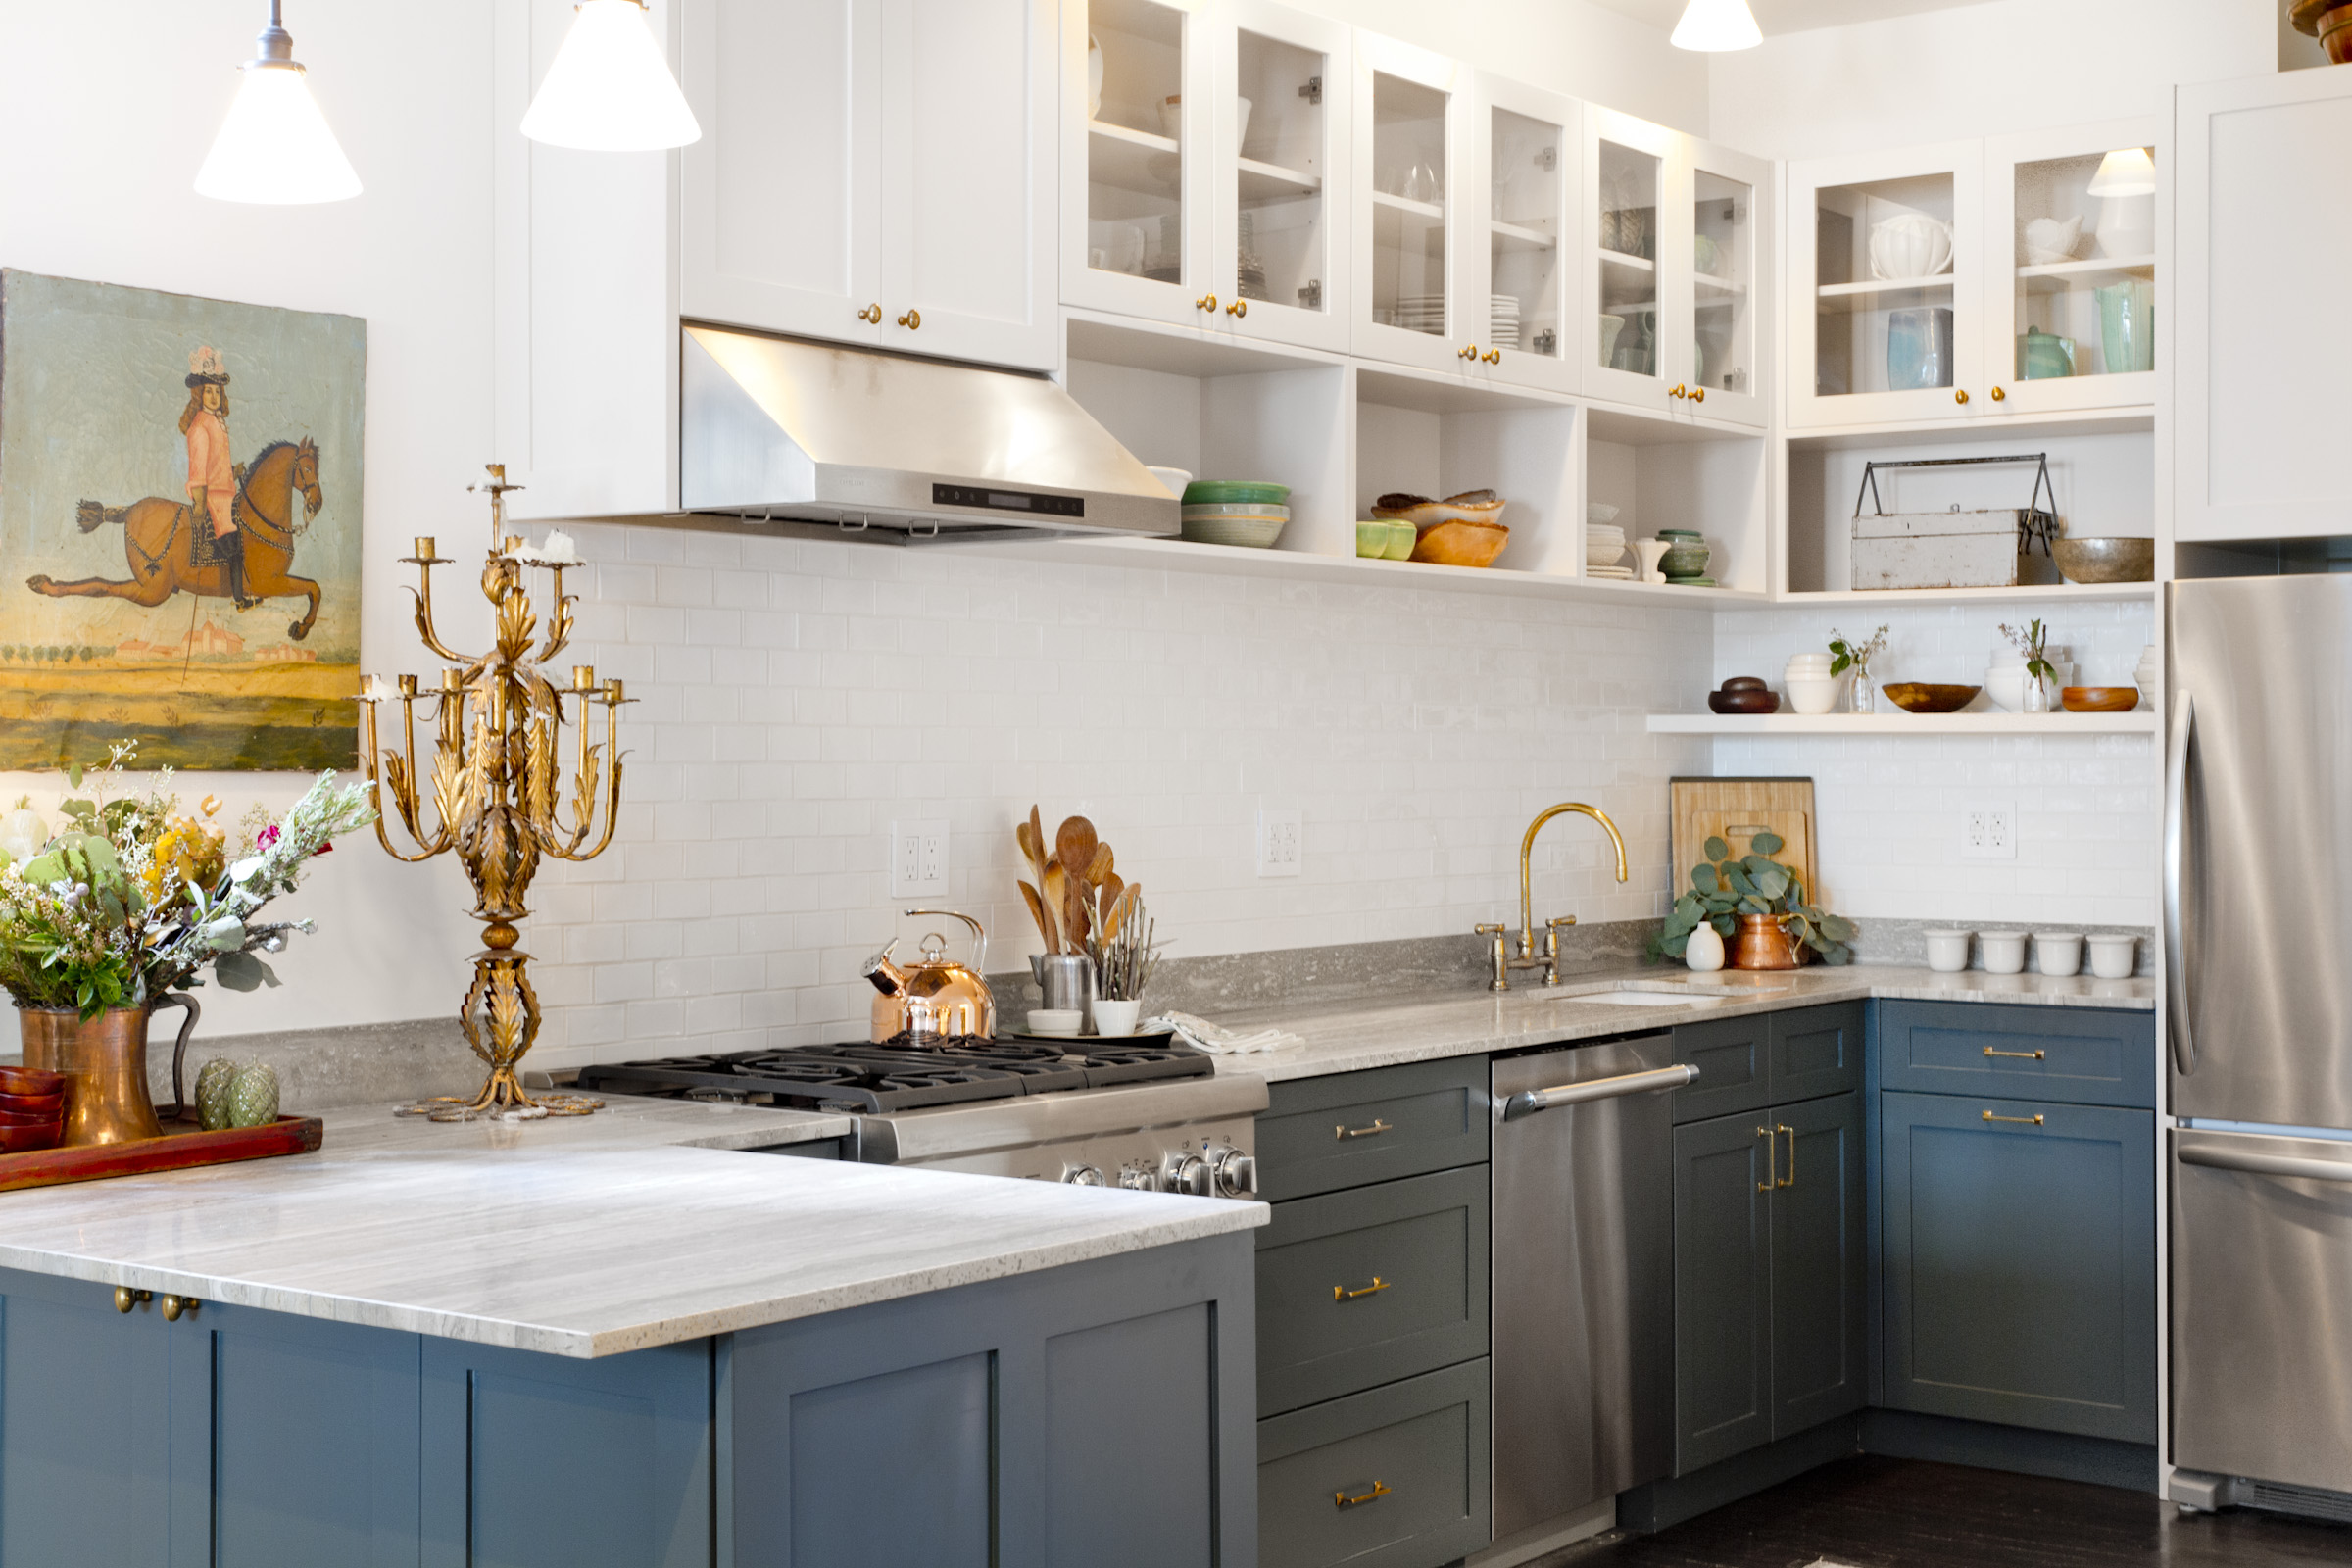 Kitchen Design Trends In 2018 10 Home Design Trends To Watch Out For In 2018 According To Houzz